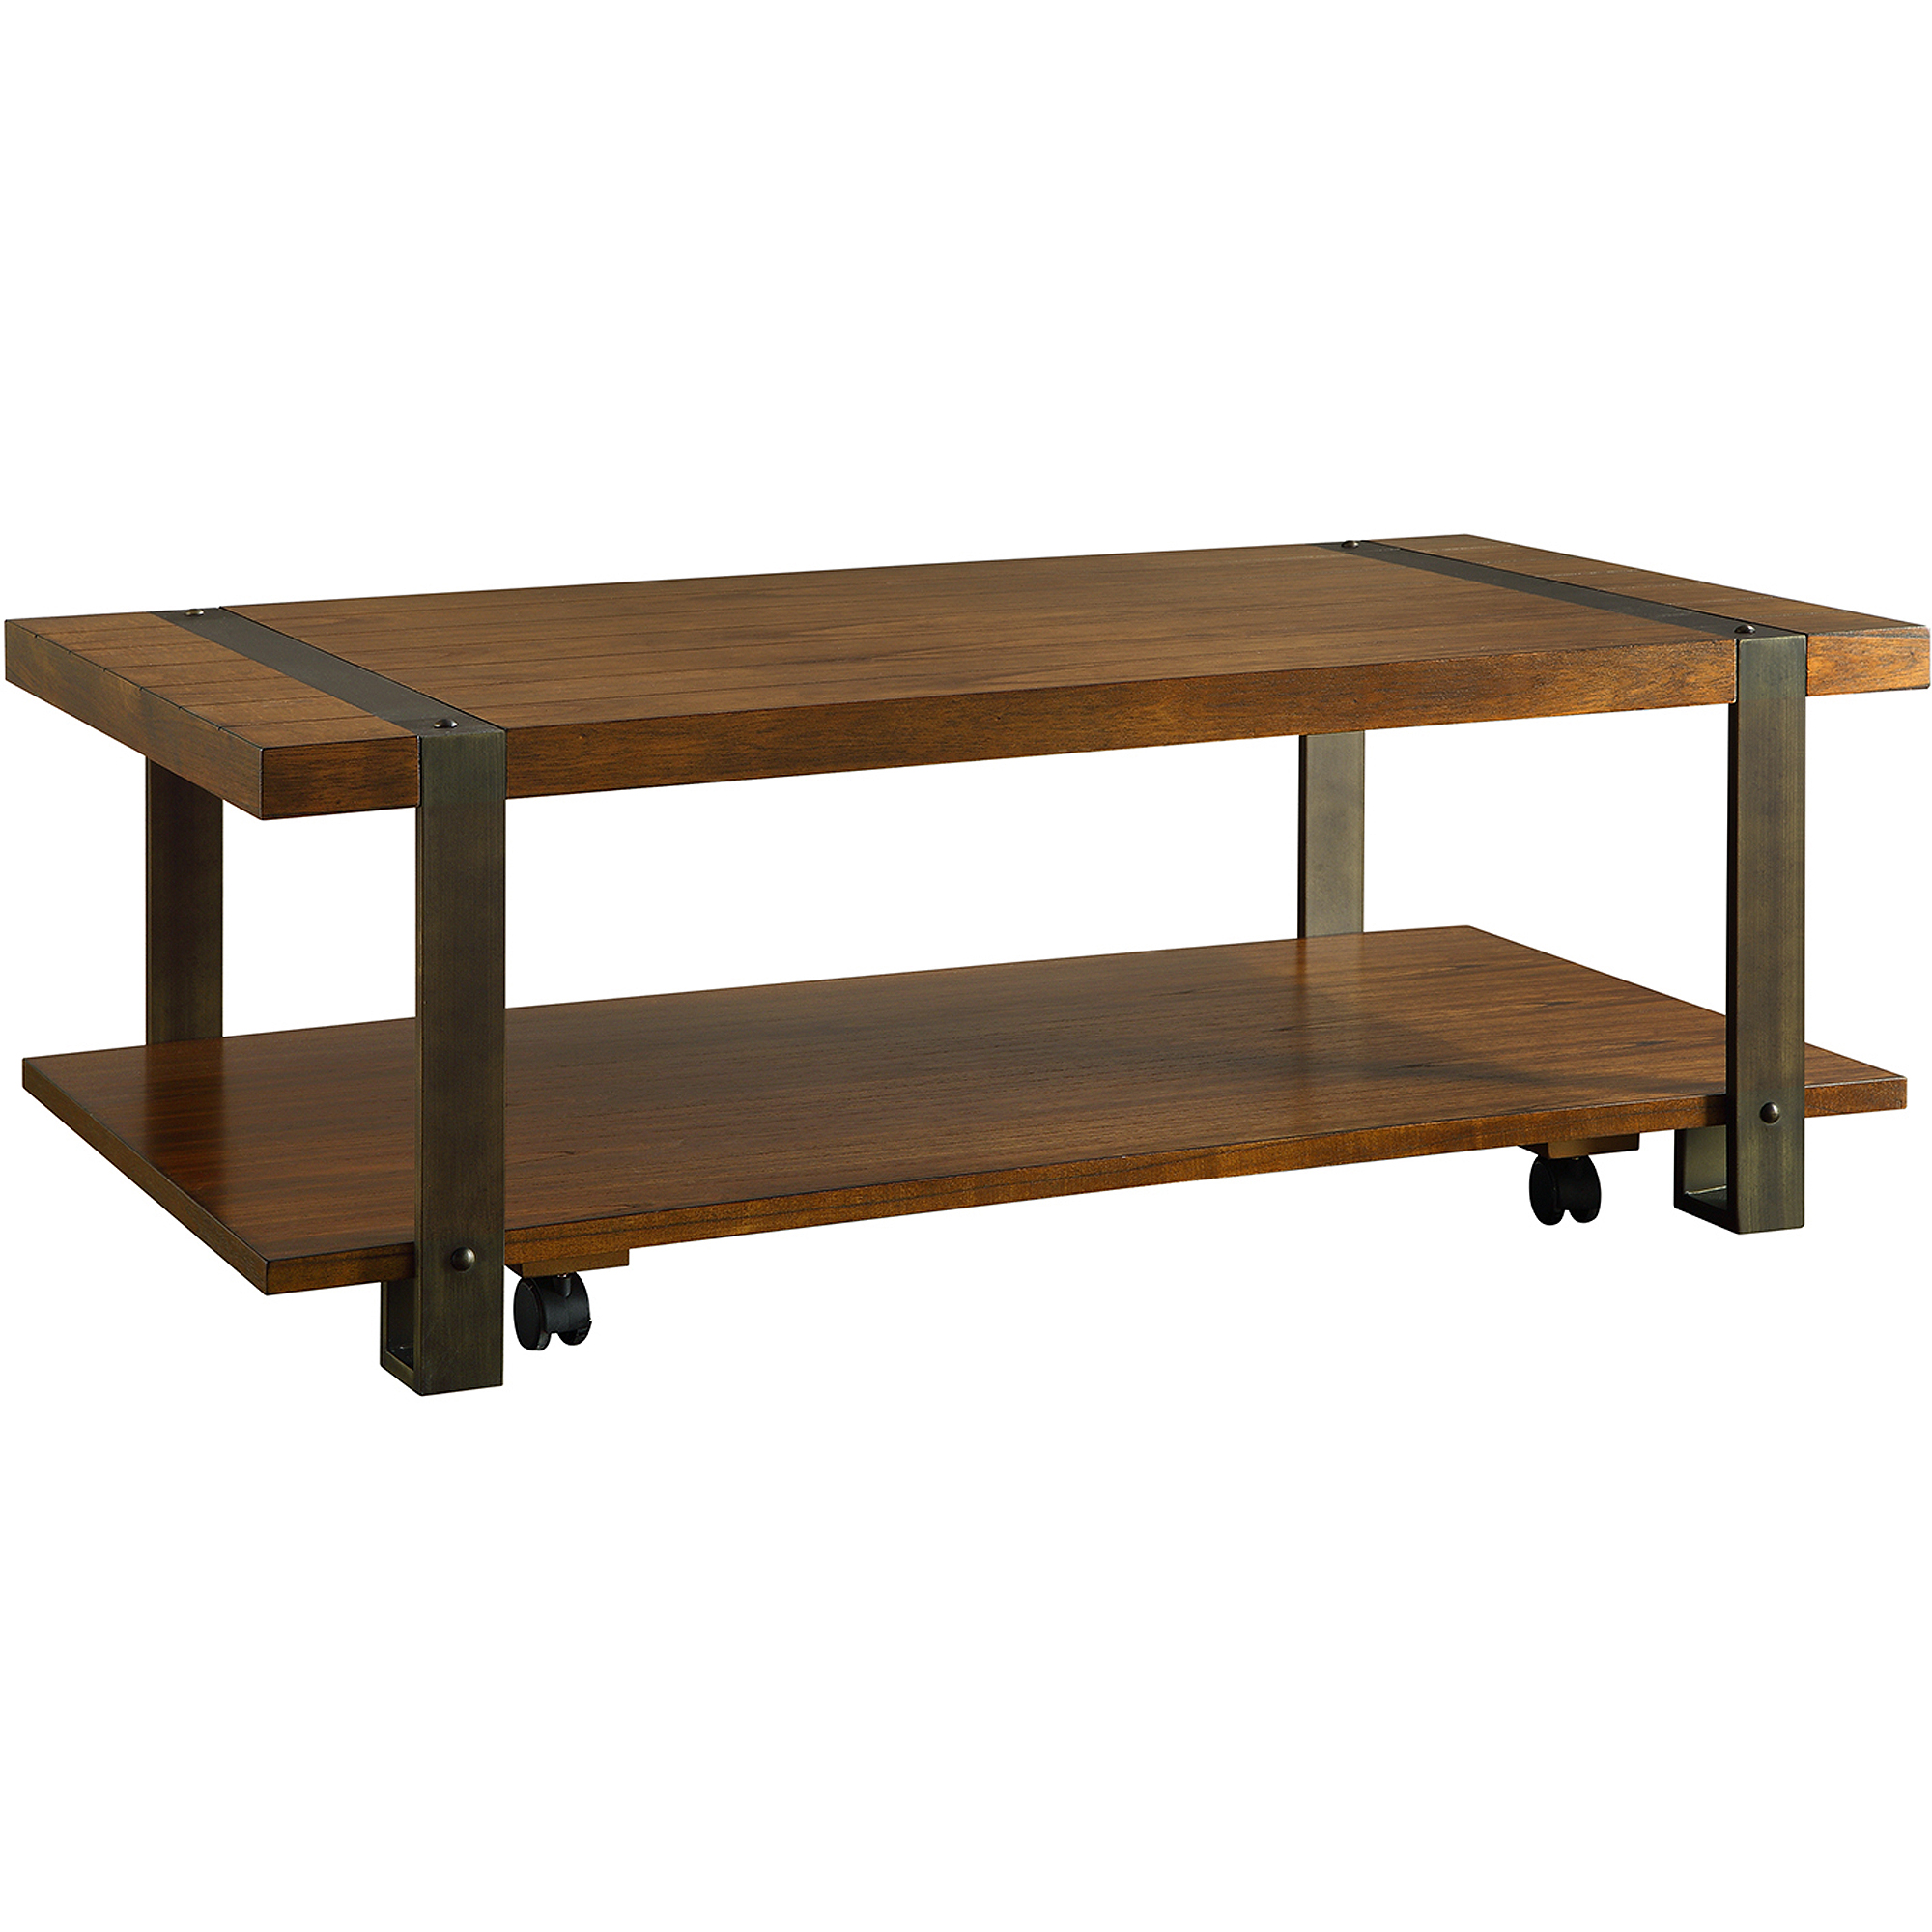 Industrial Collection Rectangular Coffee Table with Casters Light